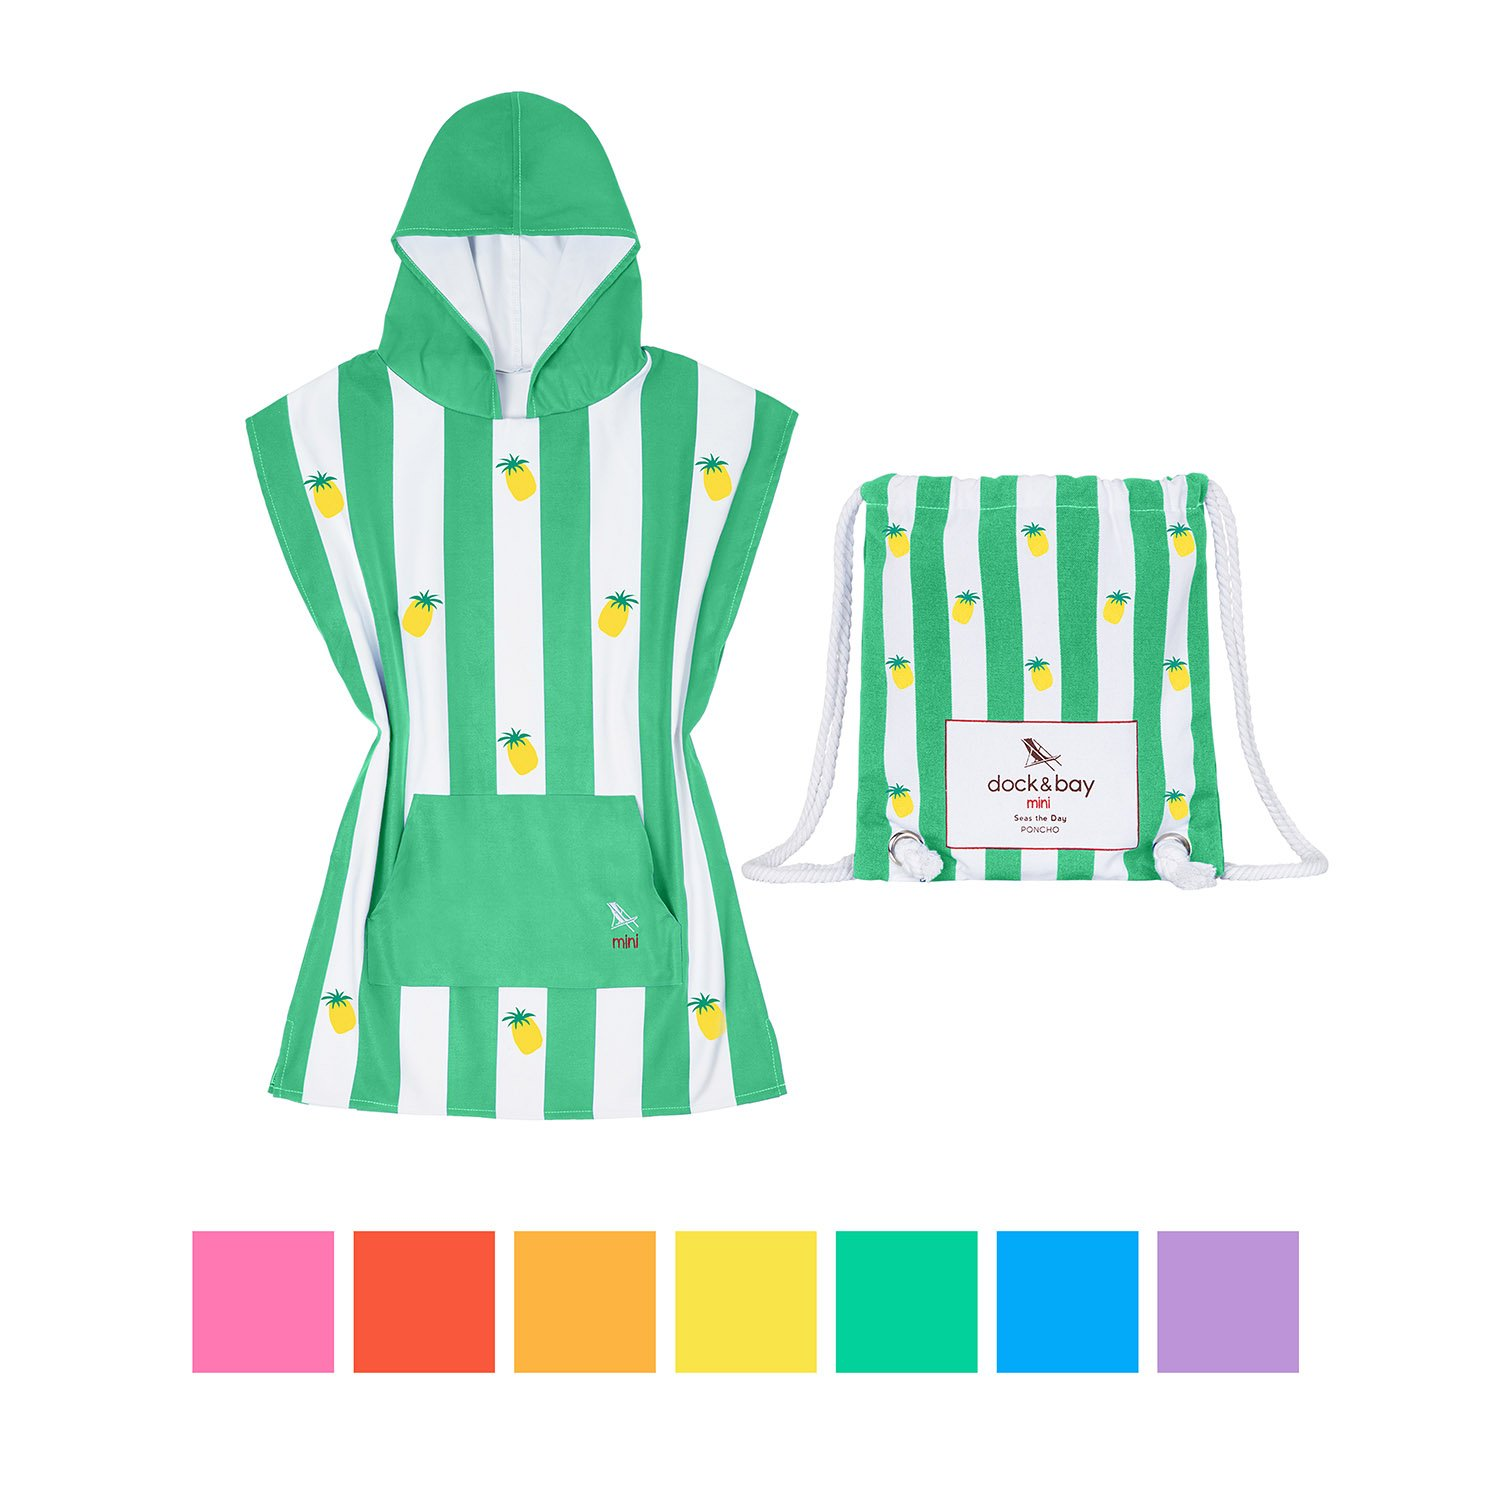 Dock & Bay Kids Poncho Microfiber towel (Green Pine, Small) - childrens hooded poncho for swimming & pool